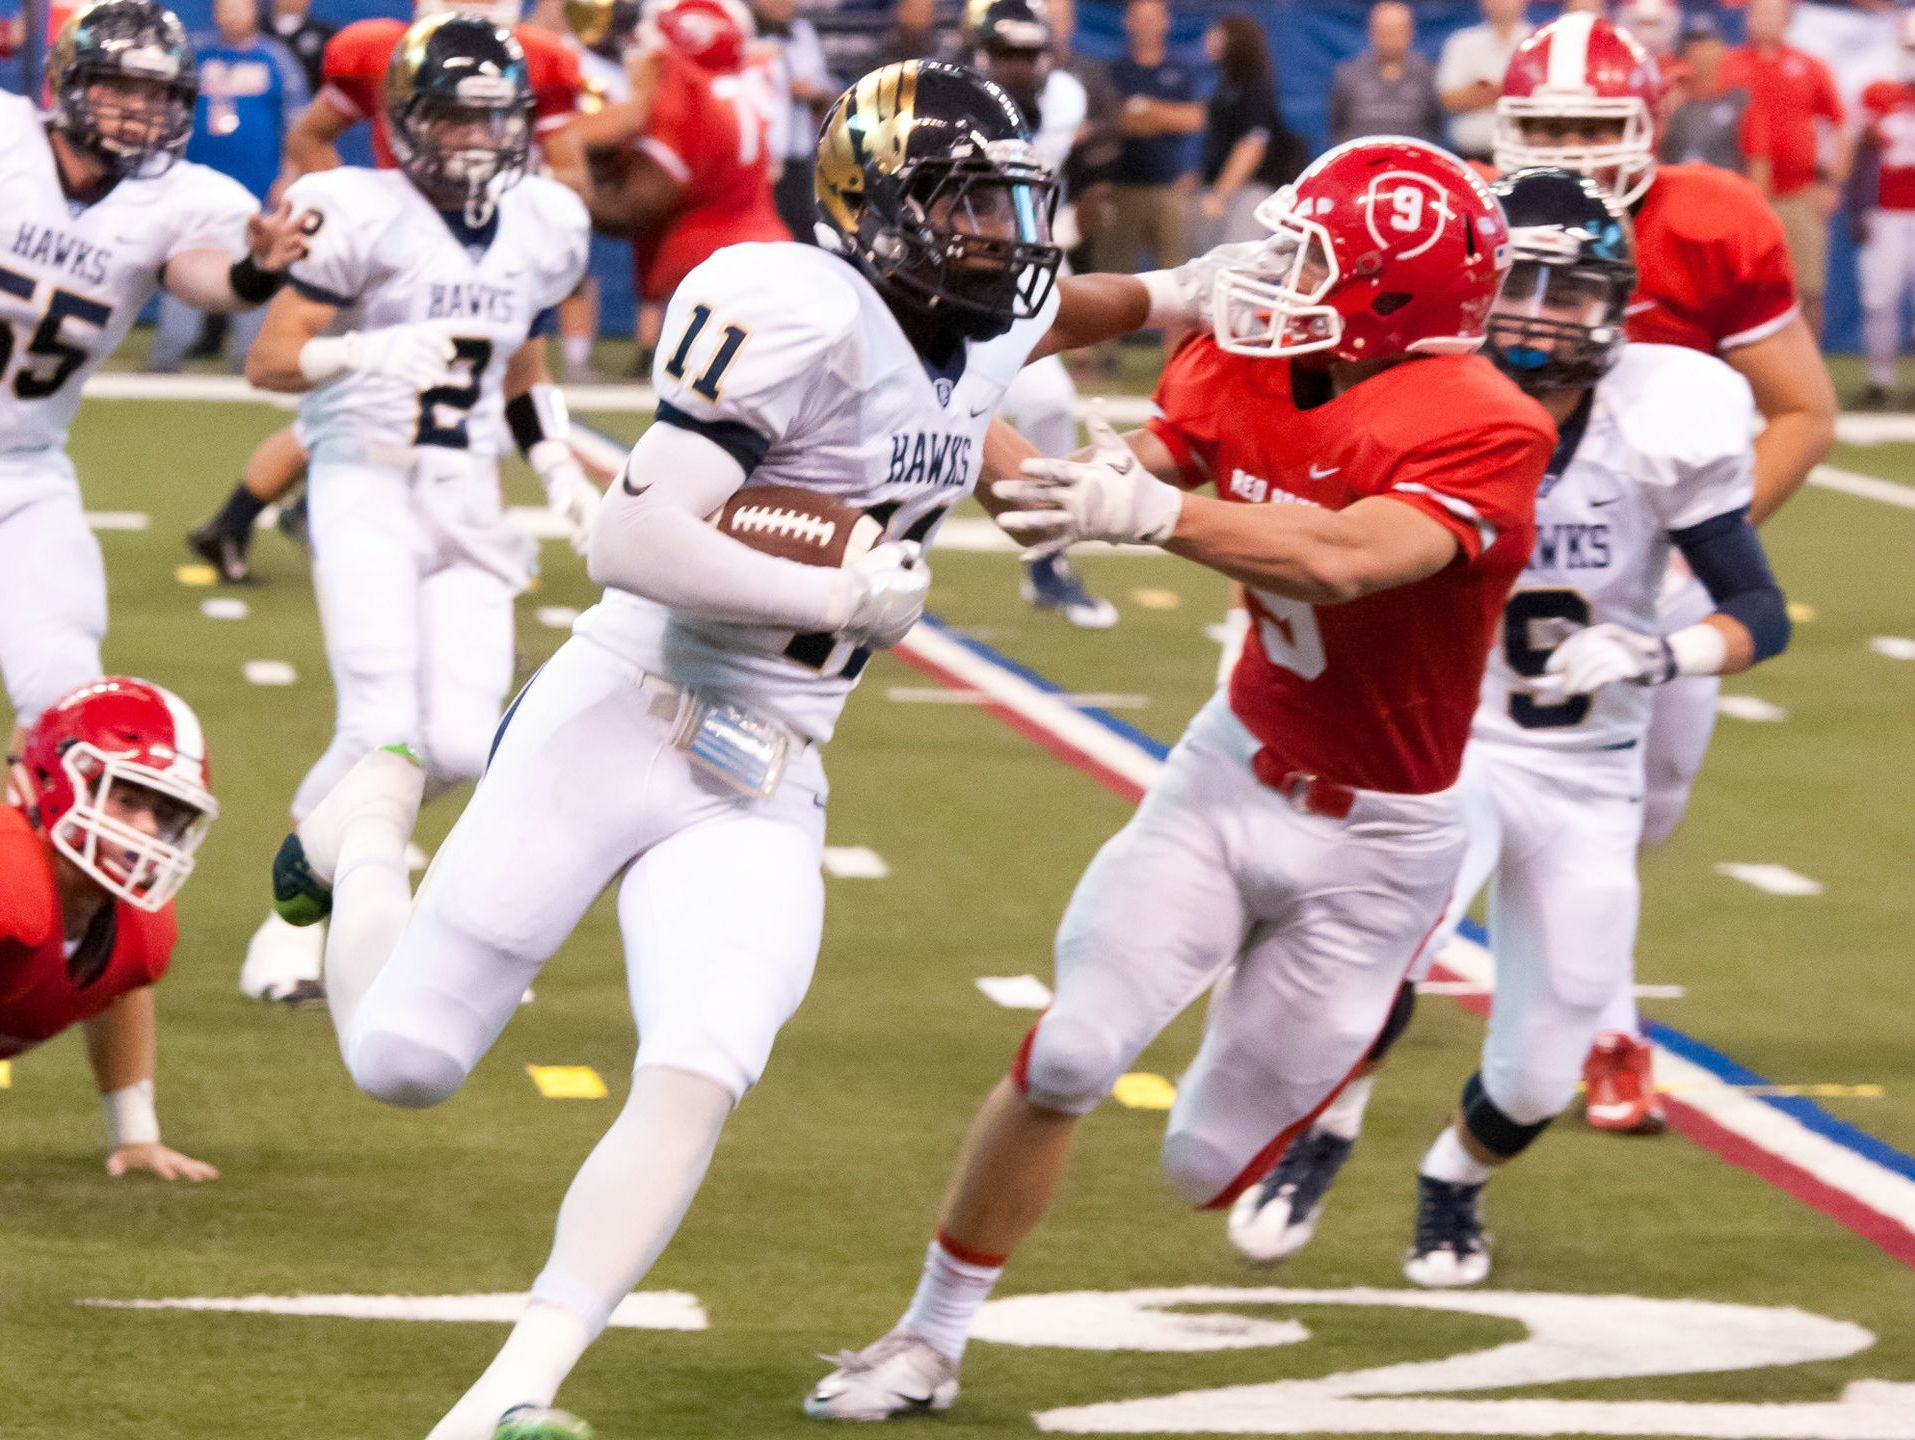 Decatur Central junior slot-back (11) Tyrone Tracy Jr. on offense against Plainfield at Lucas Oil Stadium on Sept. 24, 2016.